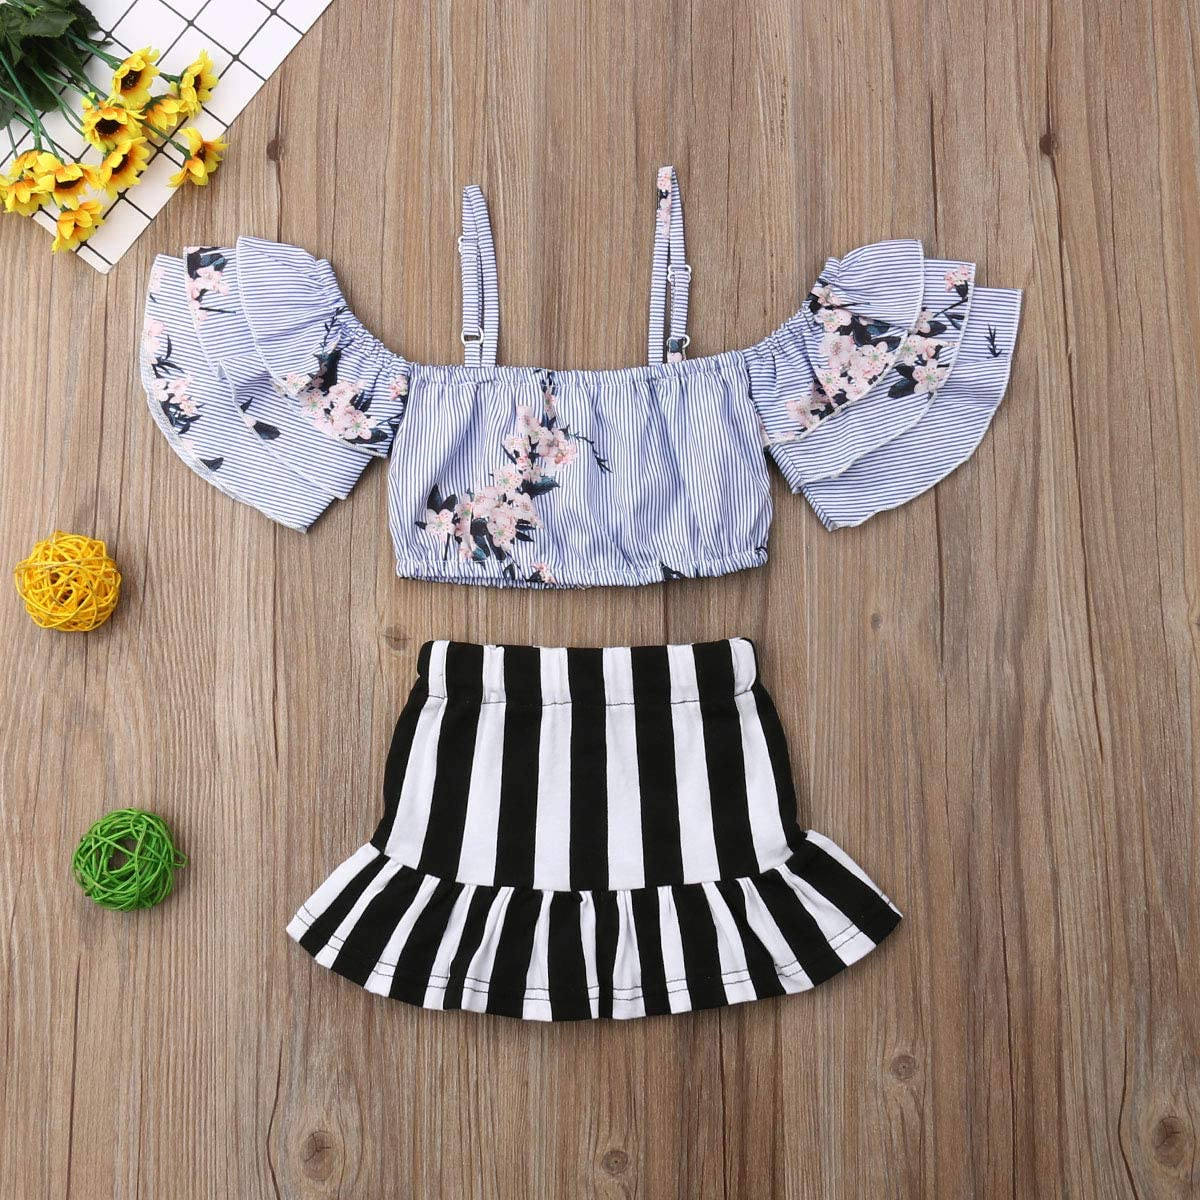 yannzi Toddler Kids Baby Girls Clothes Off Shoulder Top Shirts Striped Pants Outfits 1-6T